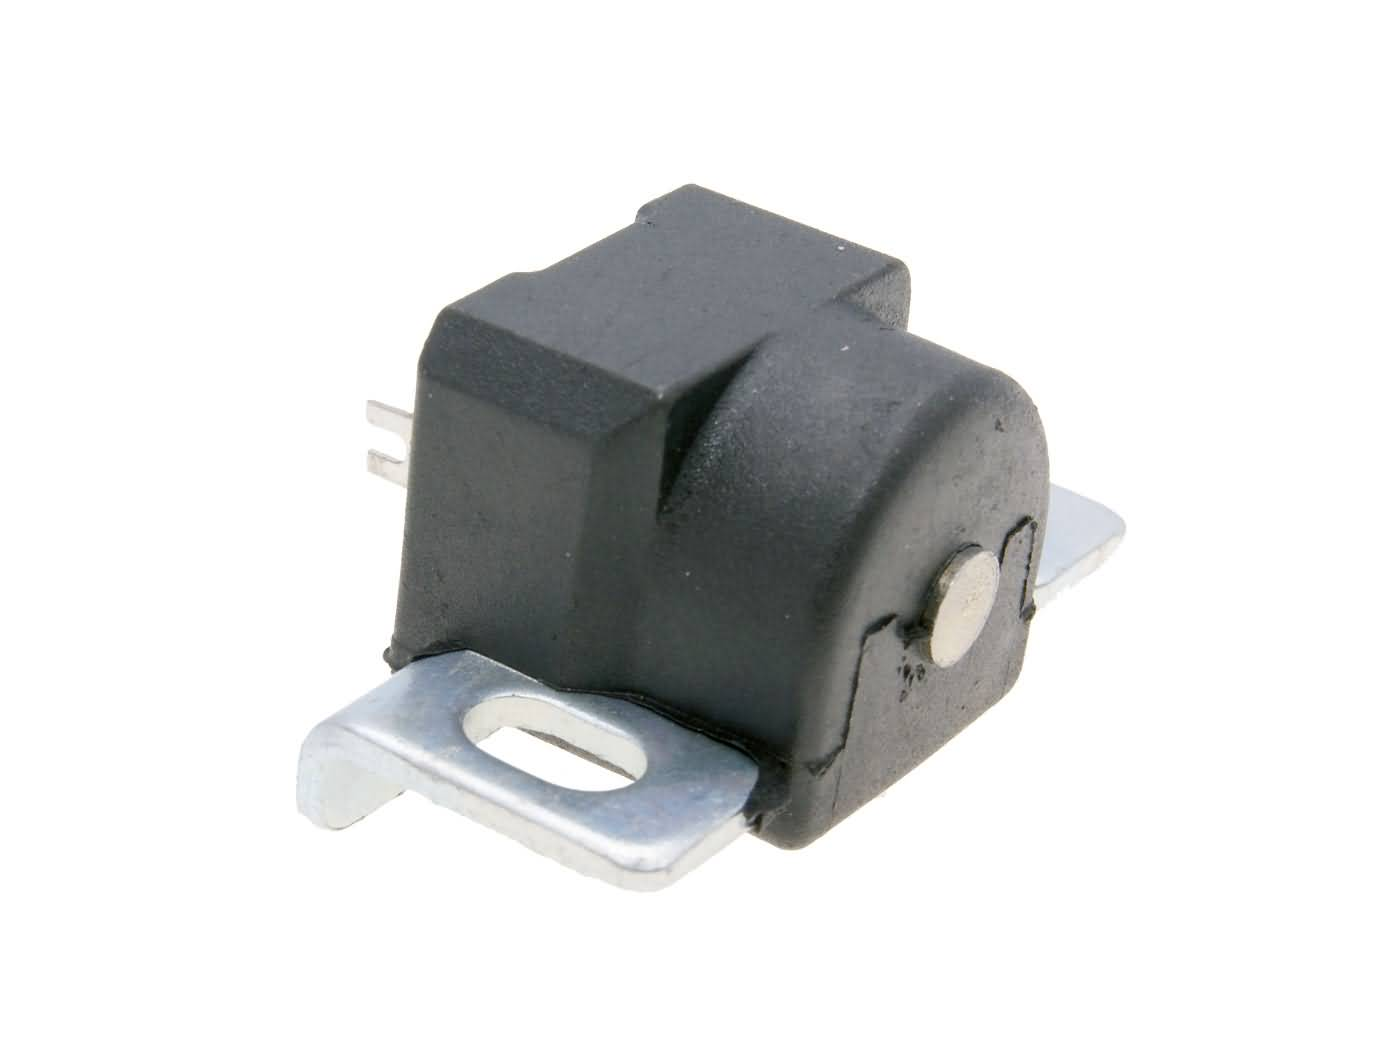 pick up coil for CPI, Keeway 1E40QMB